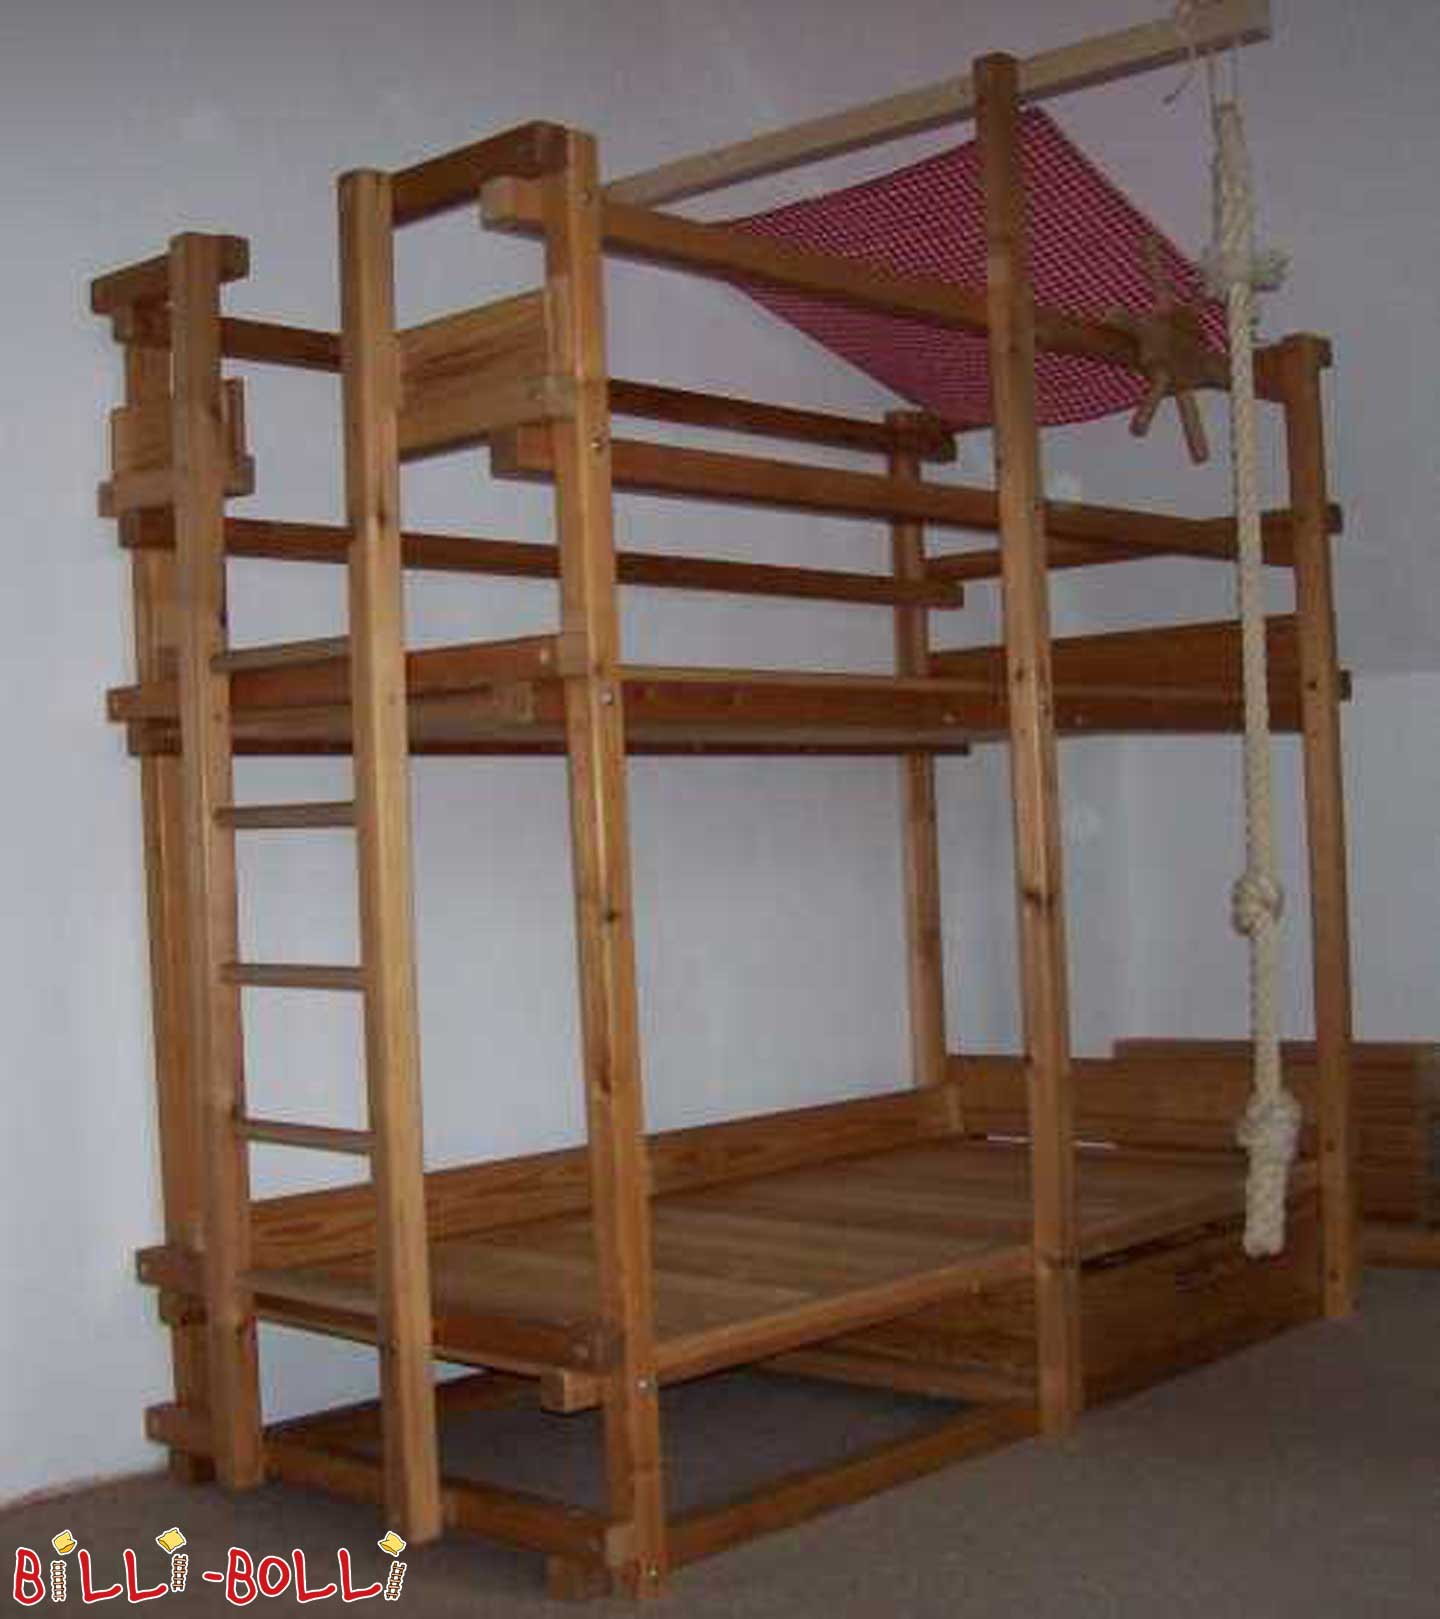 Original Gullibo Pirate Bed (second hand kids' furniture)